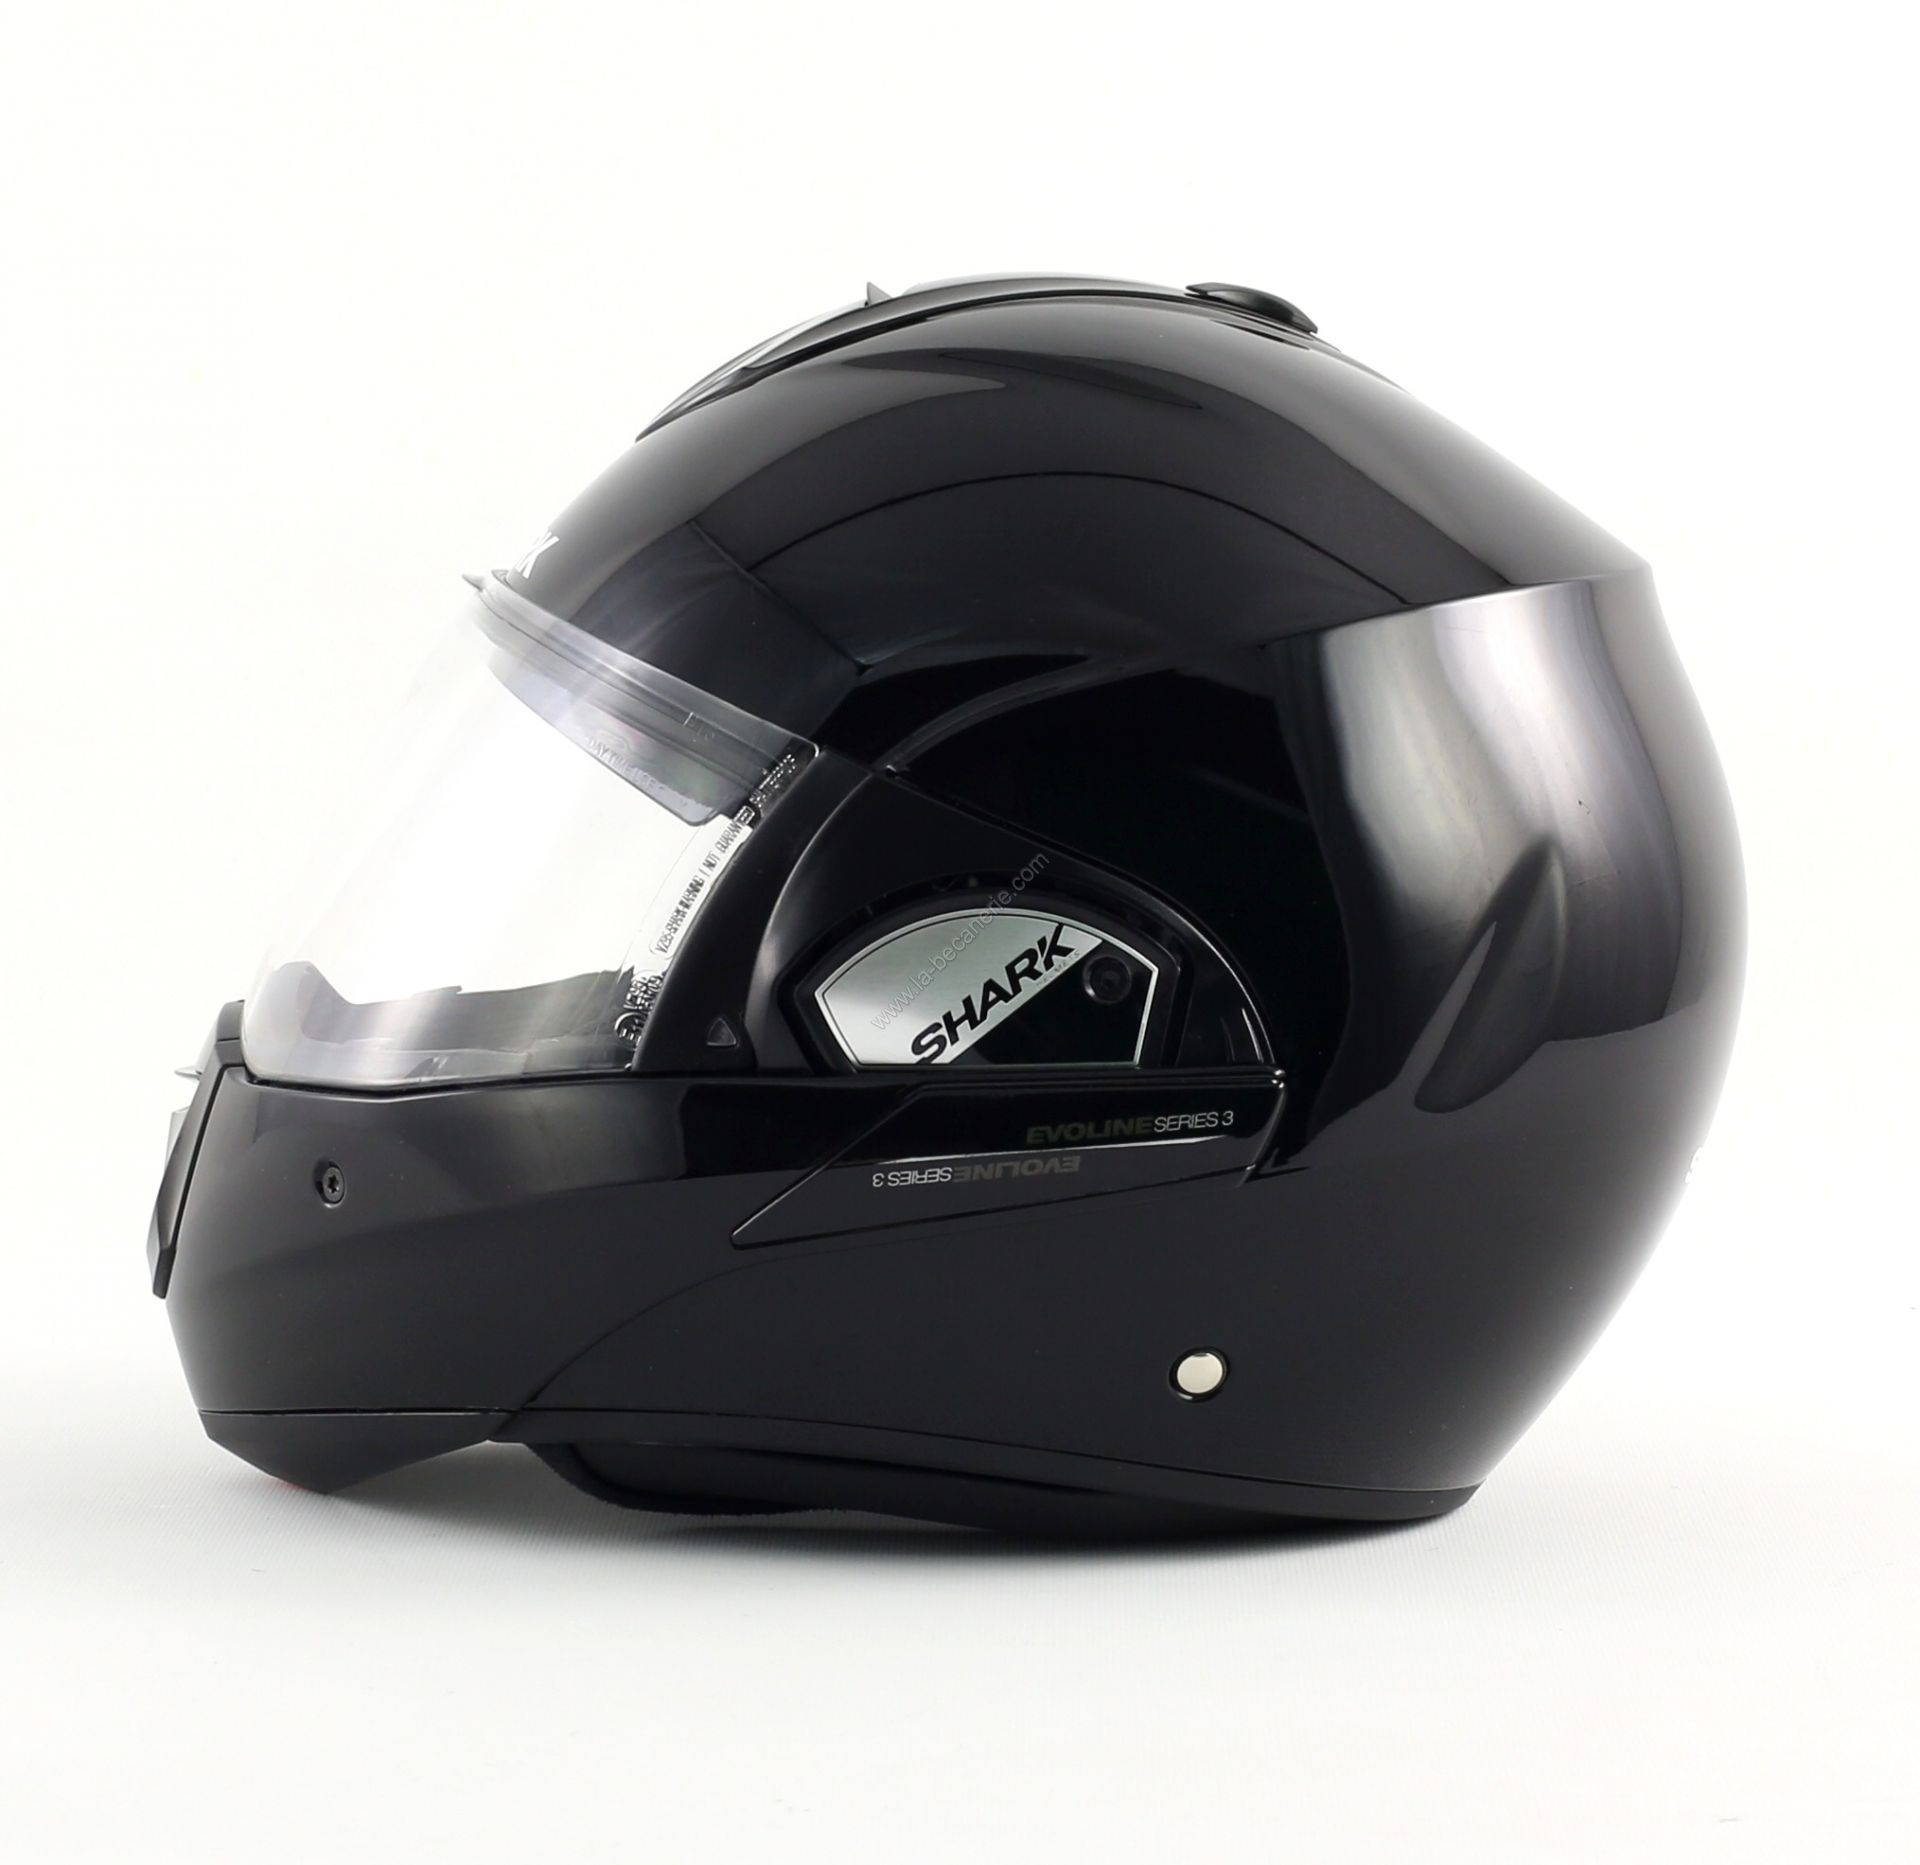 casque modulable achat vente de casque moto modulable sur la b canerie. Black Bedroom Furniture Sets. Home Design Ideas